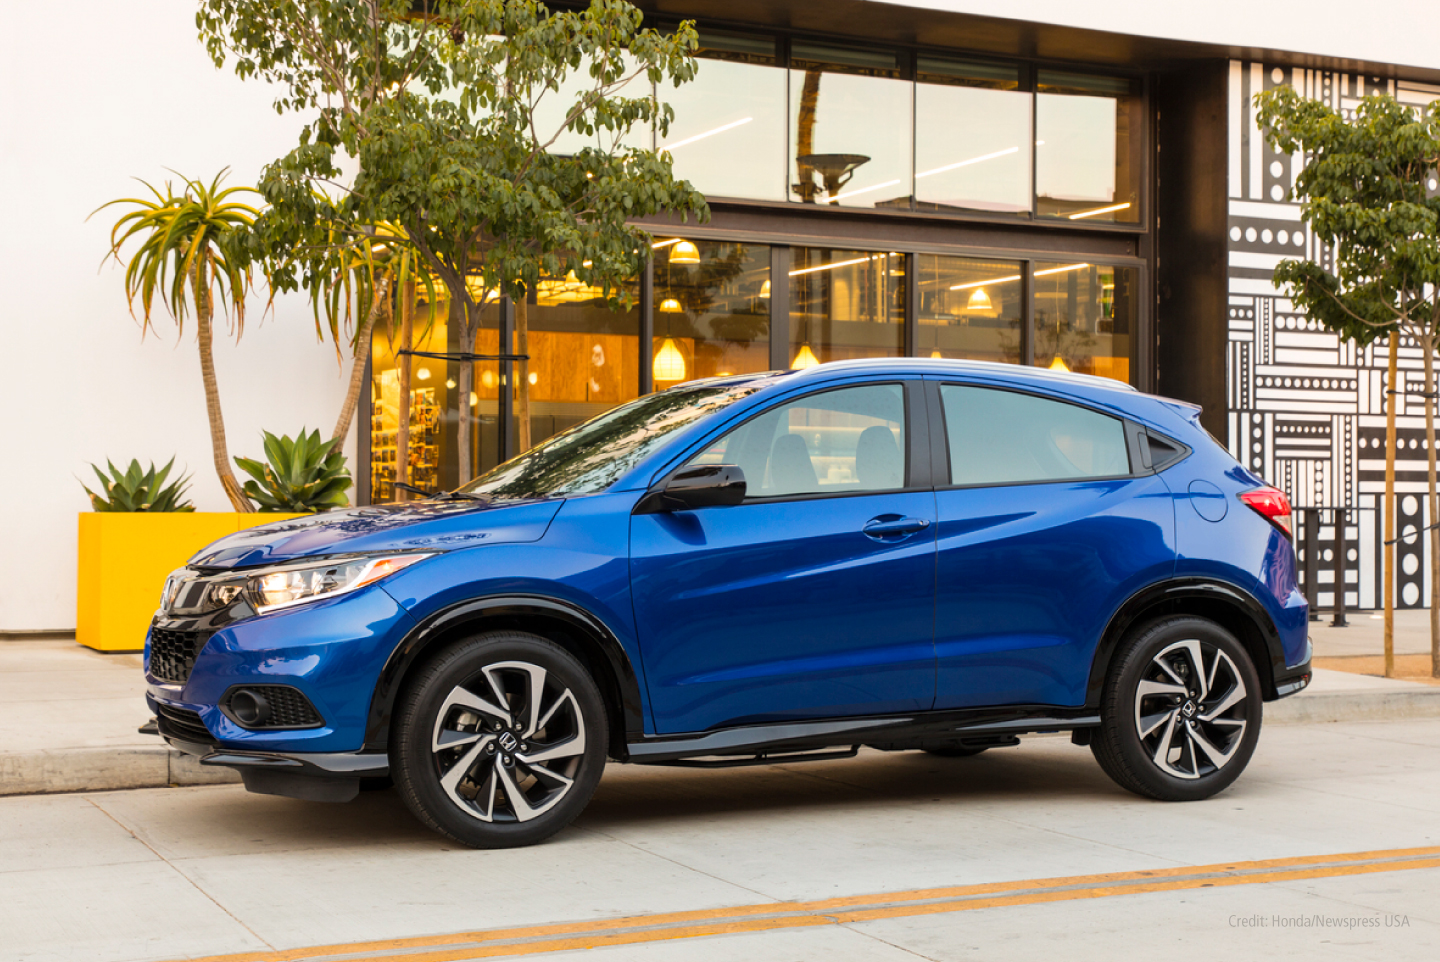 Honda HR-V parked on street